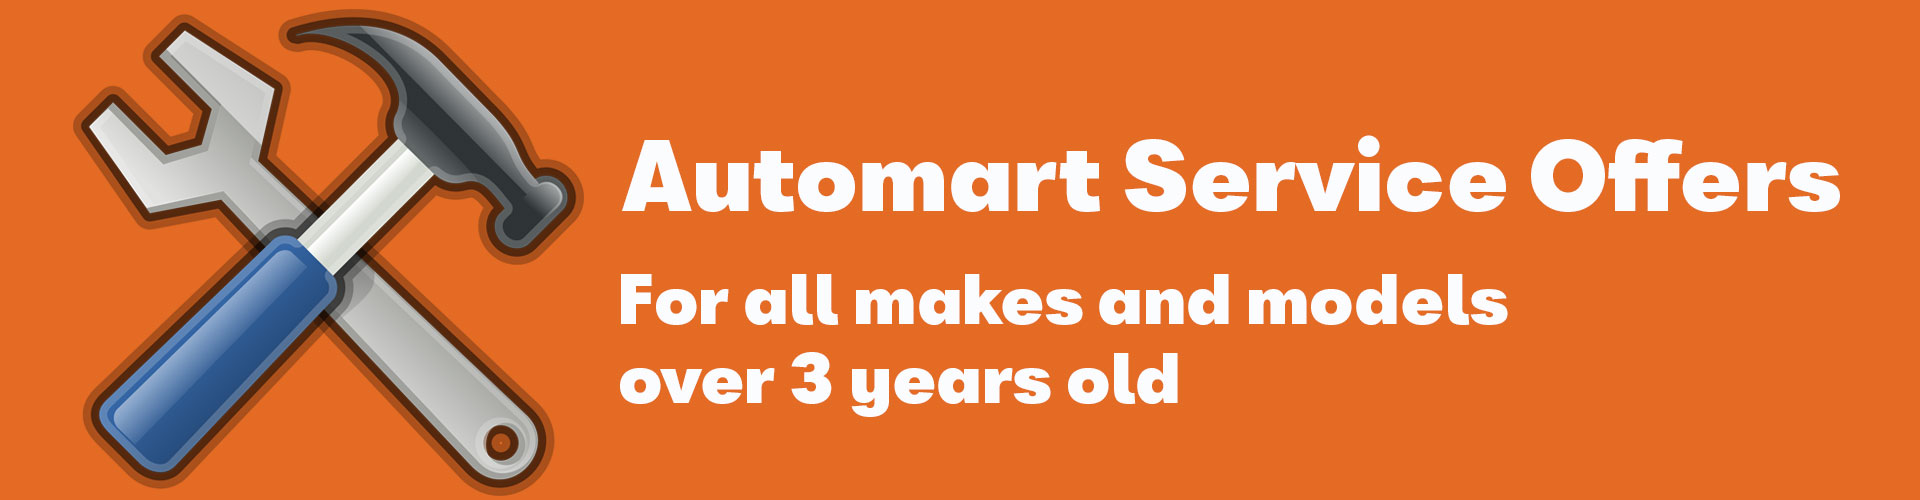 Automart servicing for all makes and models over 3 year old.